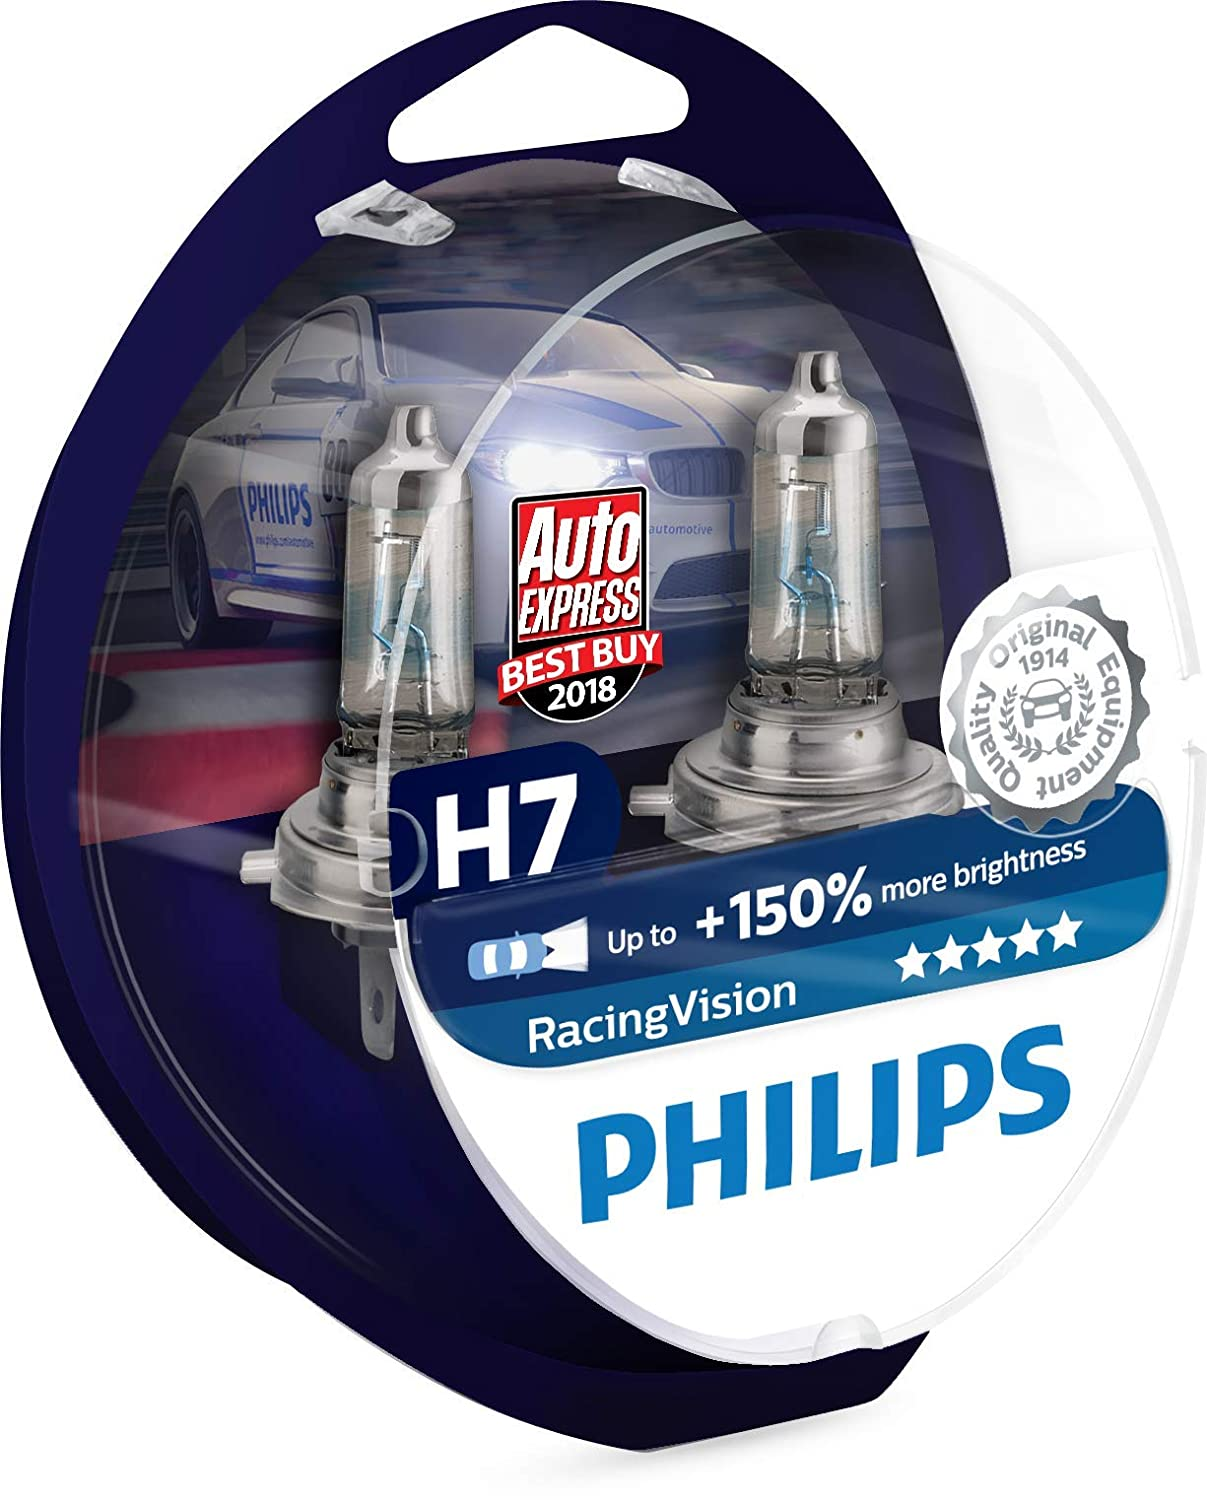 Philips RacingVision H7 Headlight Bulbs